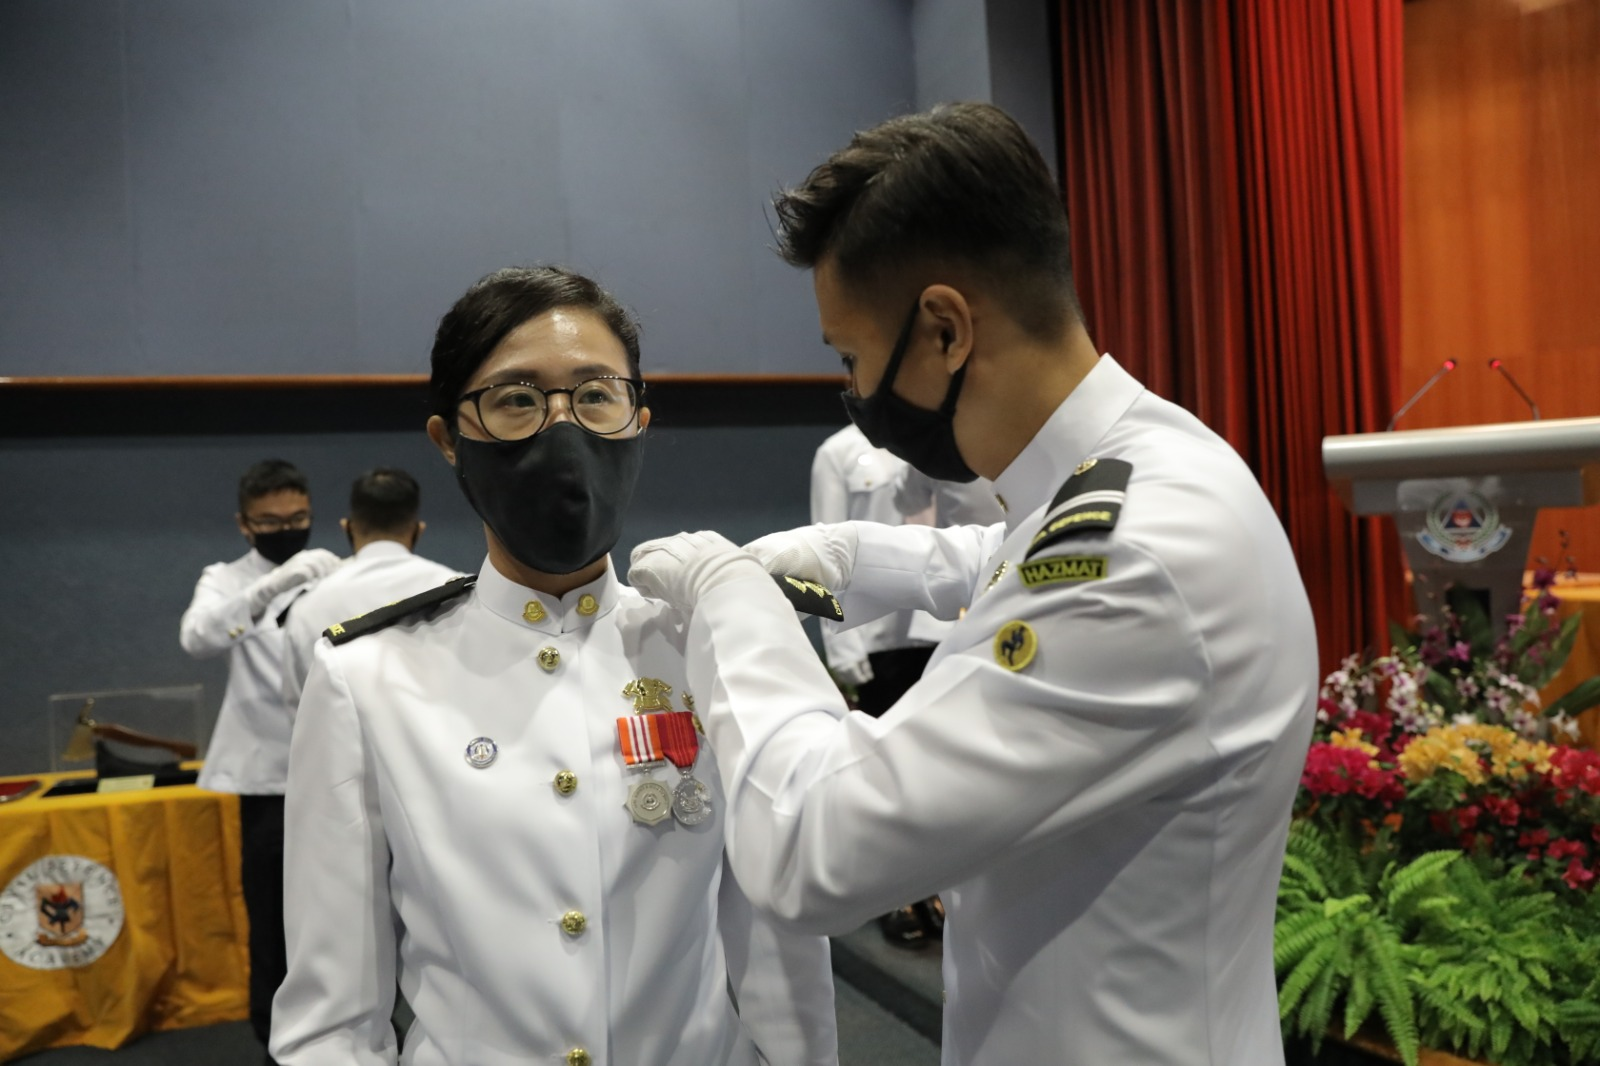 LTA Janice Lee receiving her new rank at the RCC closing ceremony in June 2020.